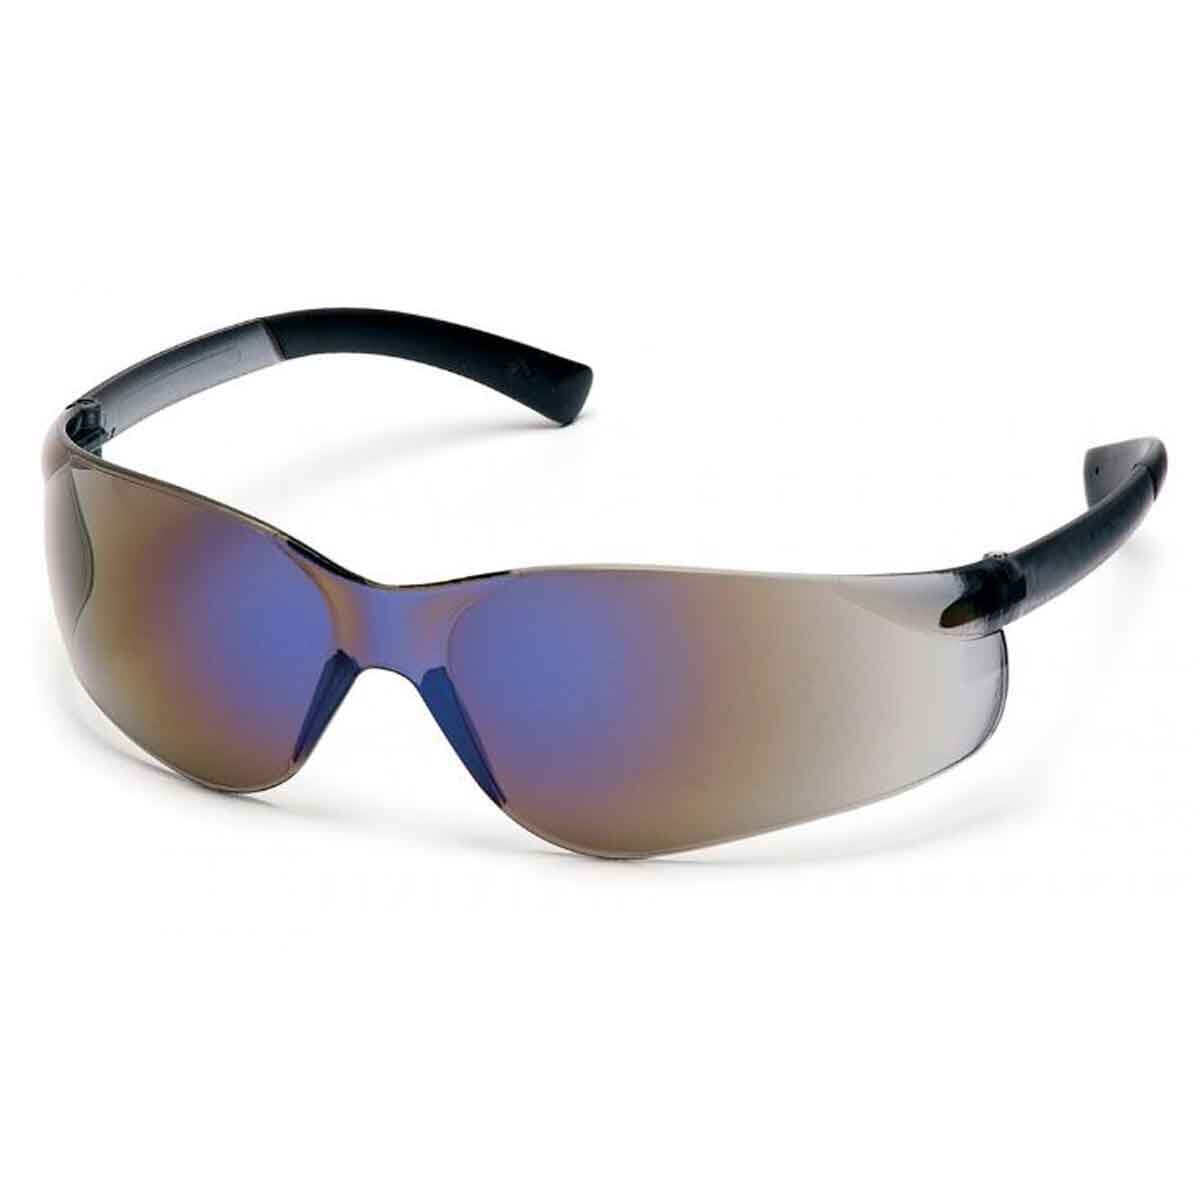 Pyramex Ztek Gray Eye Protection Safety Glasses